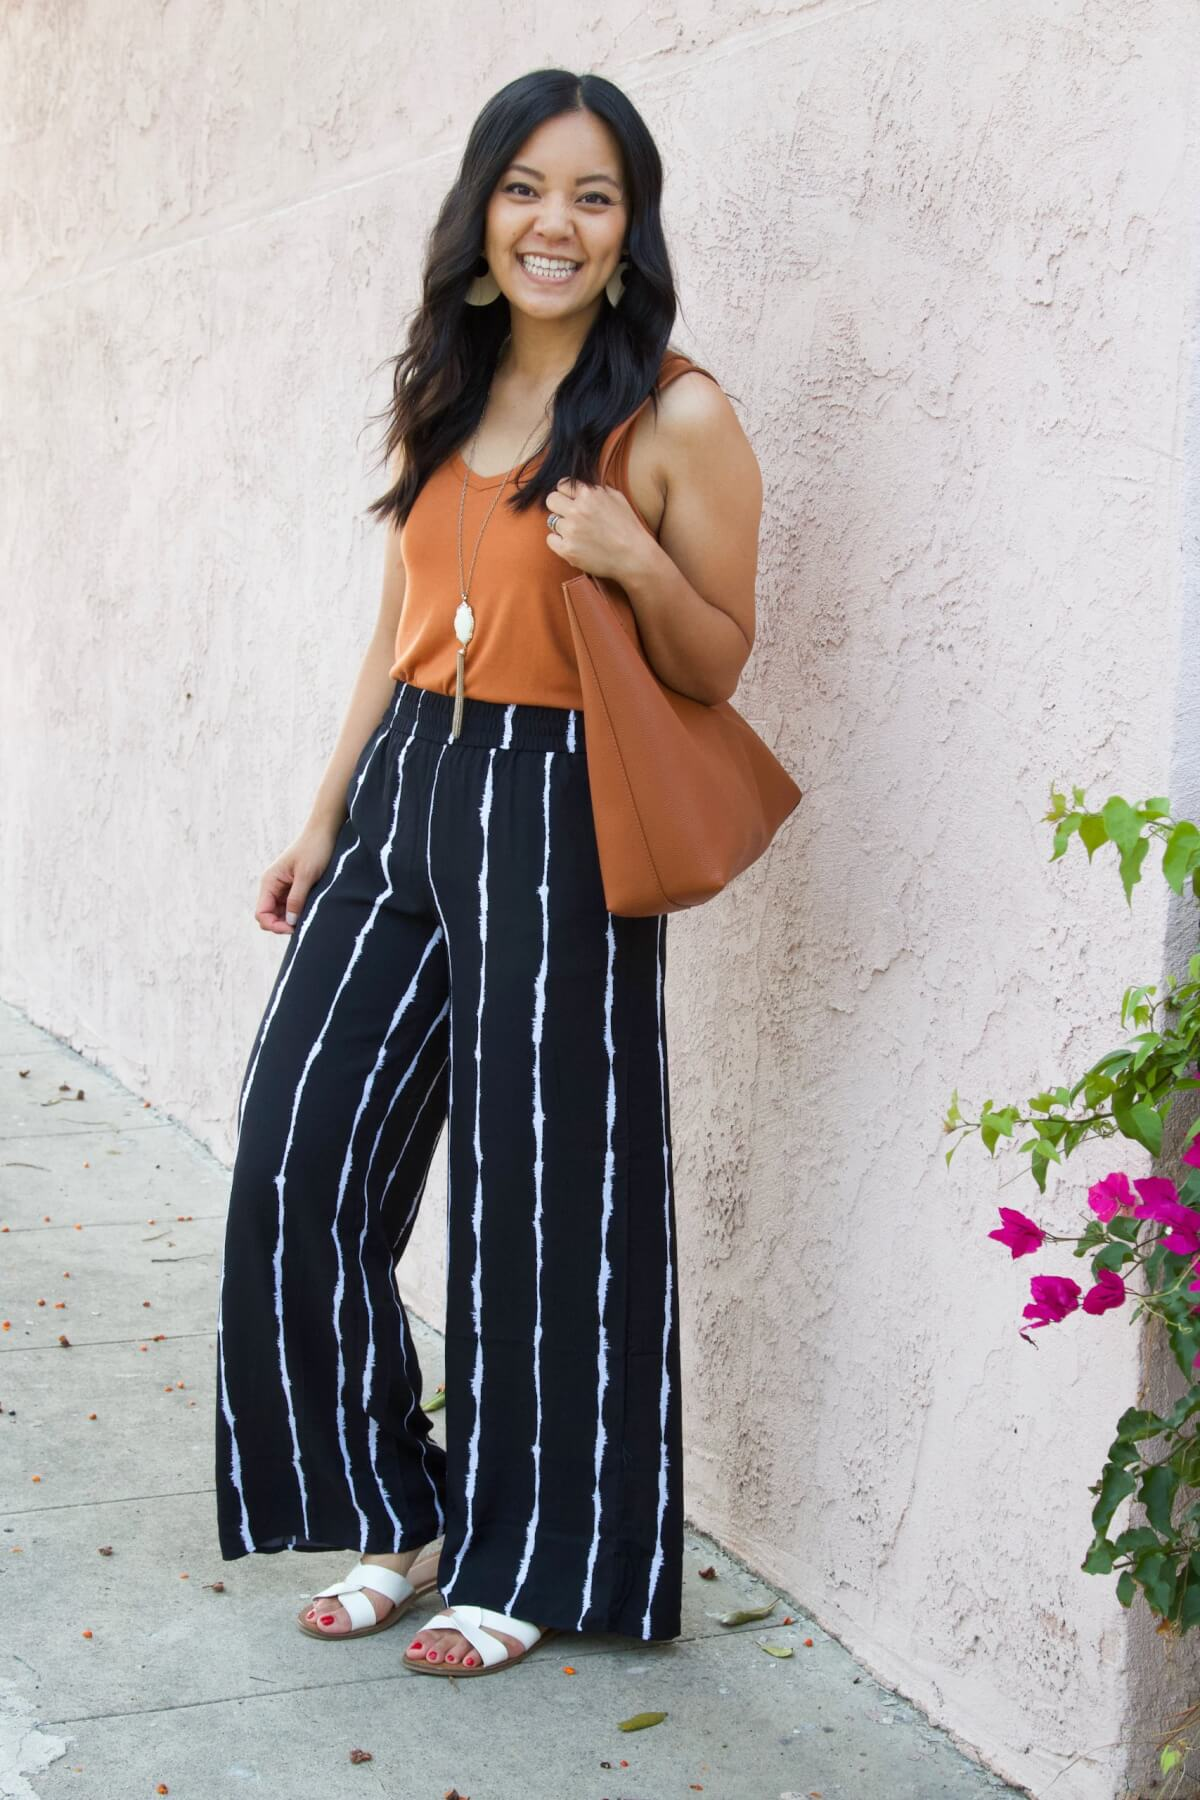 Nicer Casual Outfit for Summer to Early Fall Transition: copper orange tank + black and white striped wide leg pants + white slide sandals + white earrings + pendant necklace + tan tote side view